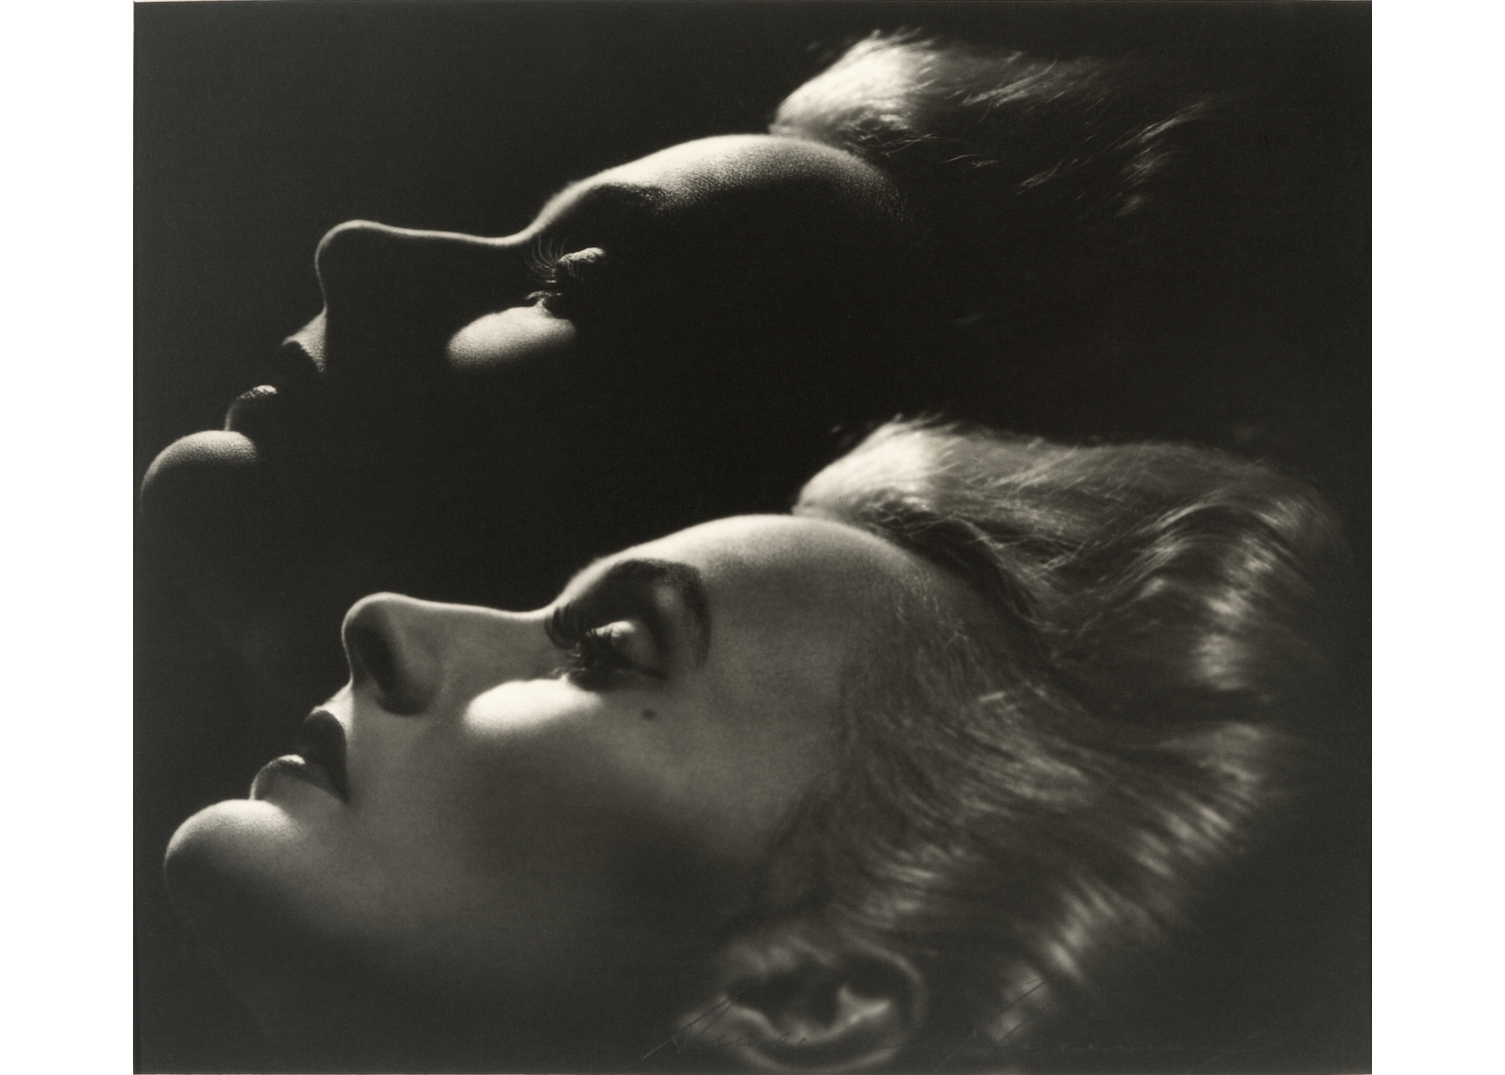 1. Heinrich_Doble Perfil (Double Profile; Florence Marly, French actress), 1942_lowres